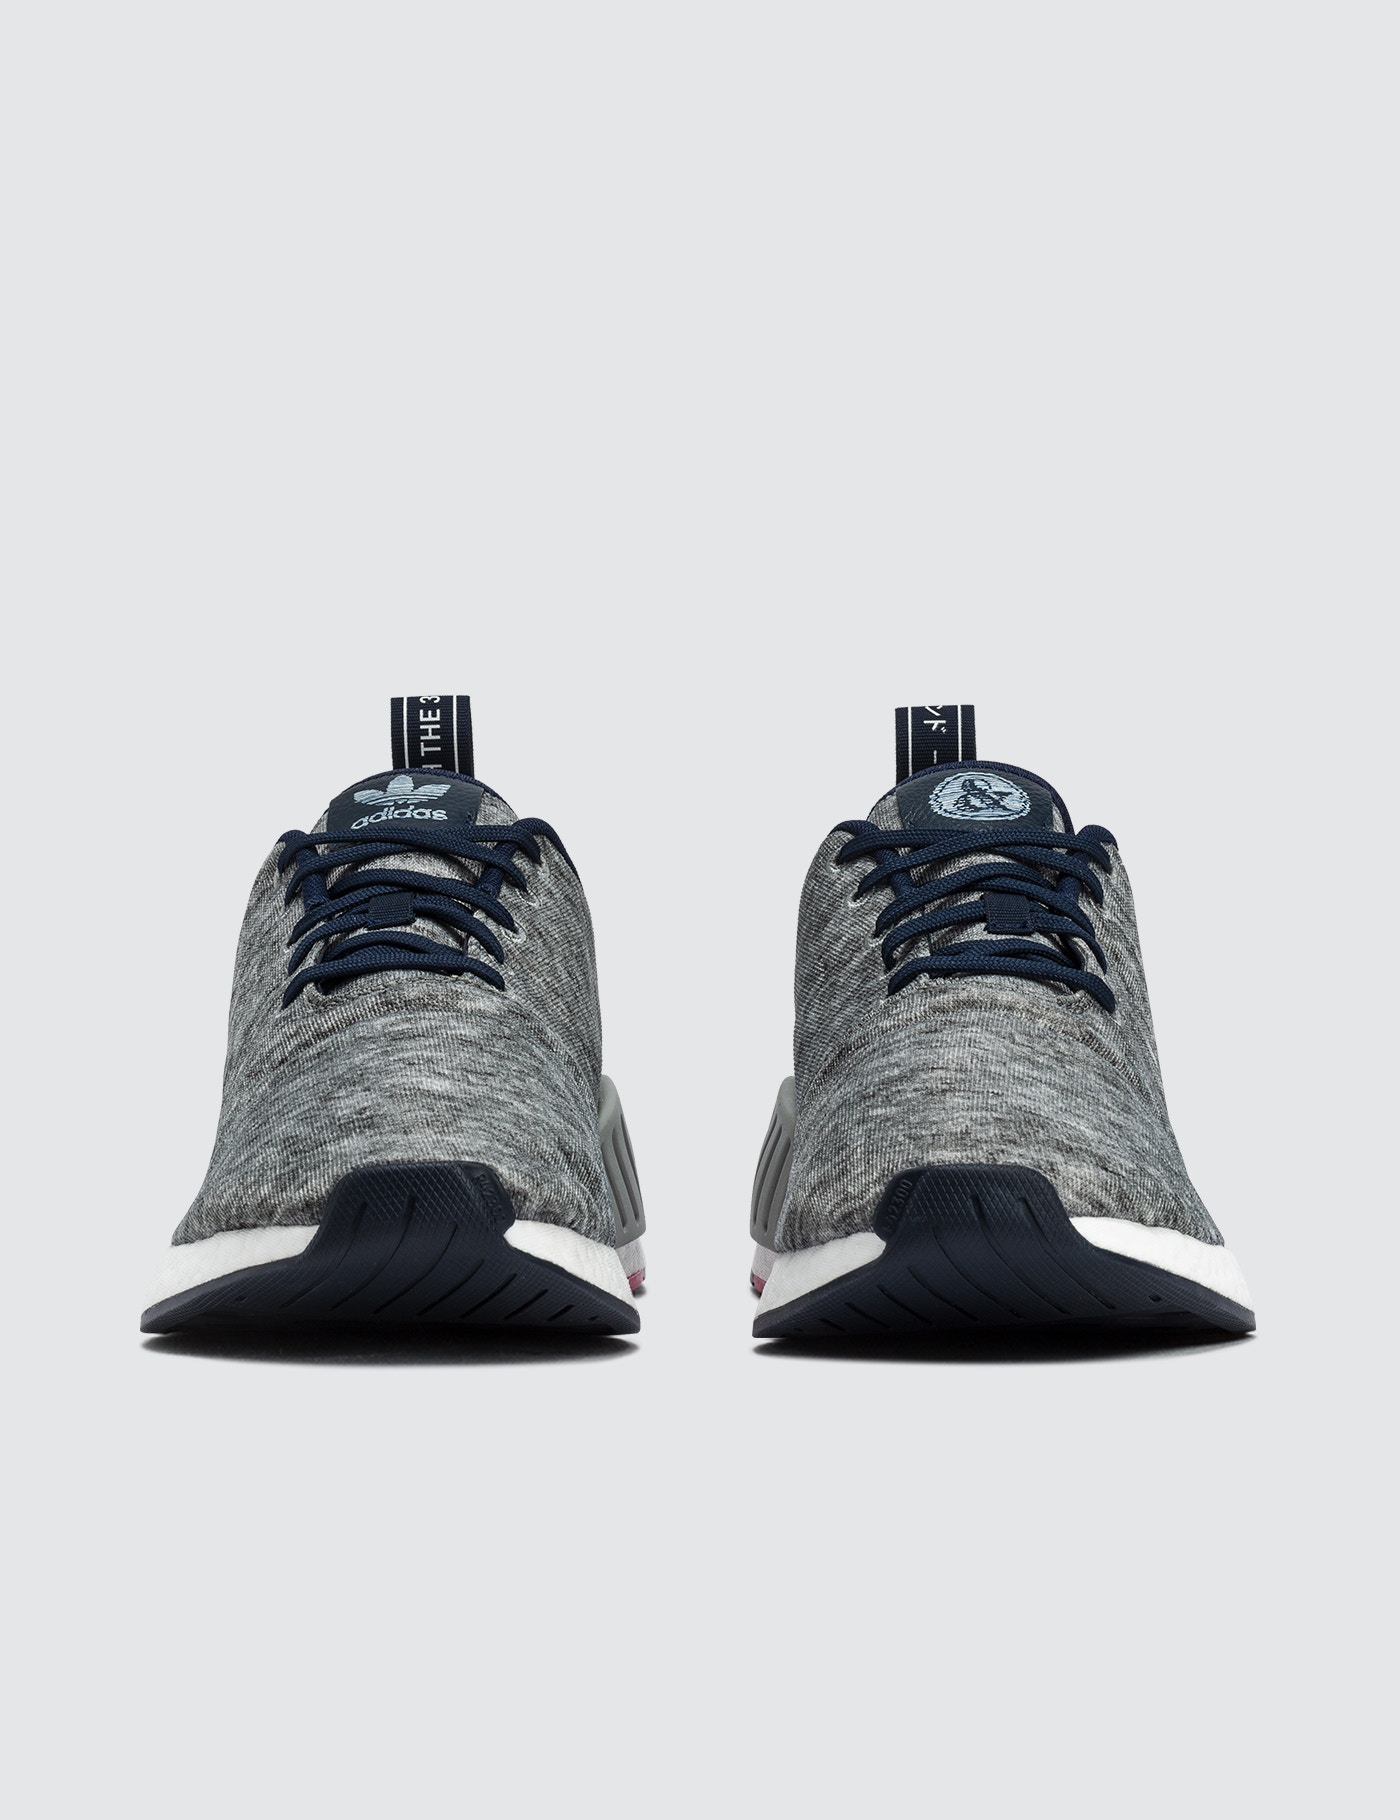 lower price with 712d1 93a08 United Arrows & Sons x Adidas NMD R2 Runner UAS, Adidas Originals